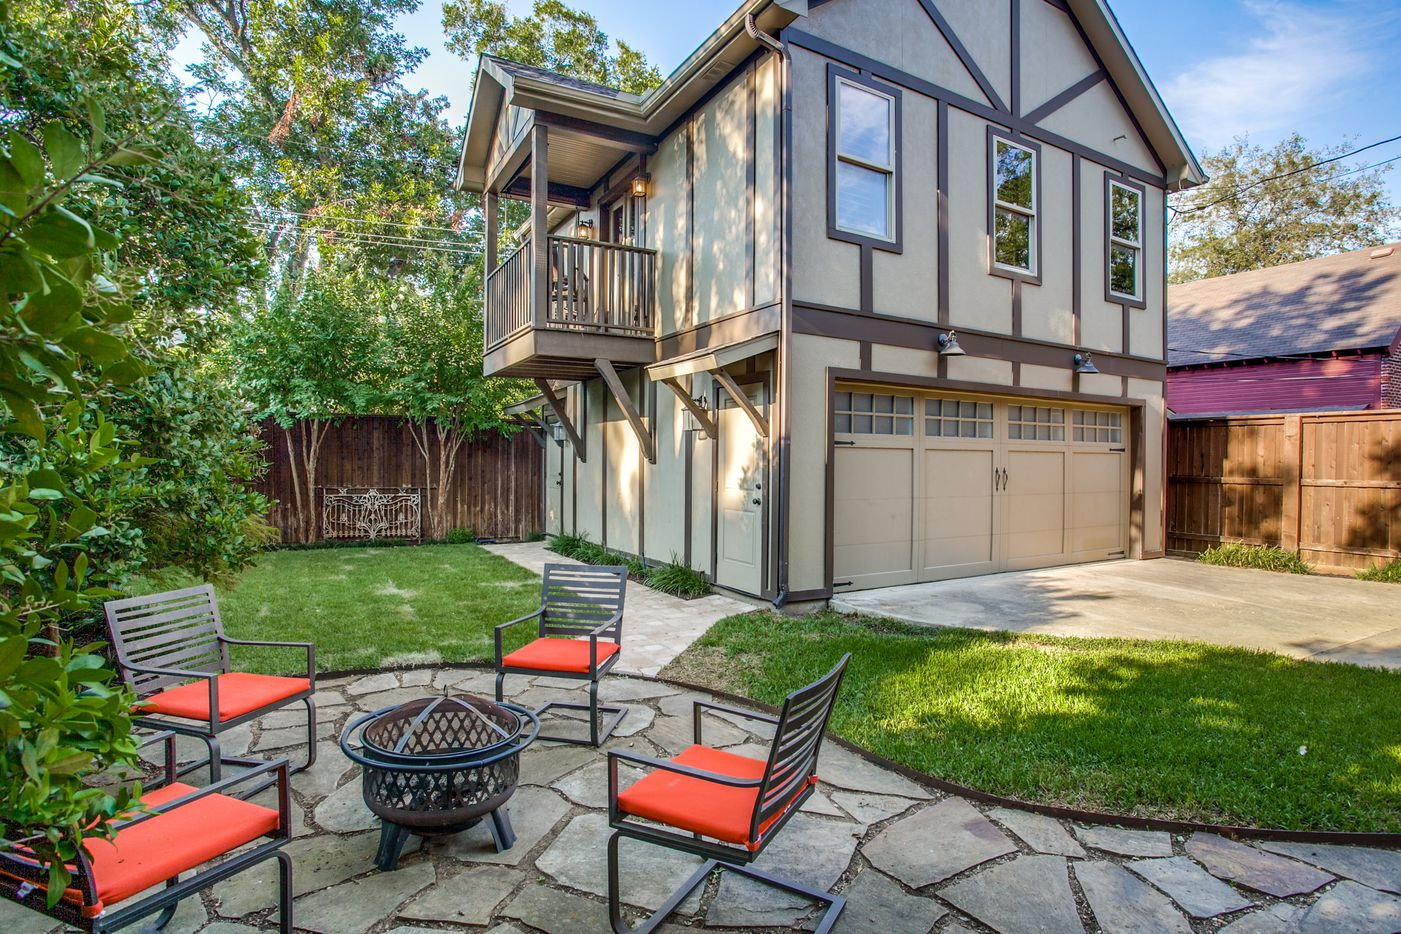 This M-Street tudor at 5831 Morningside Avenue in Dallas includes a guest quarters complete with full bath, kitchen, vaulted ceilings, plantation shutters, closet, attic space and a balcony.